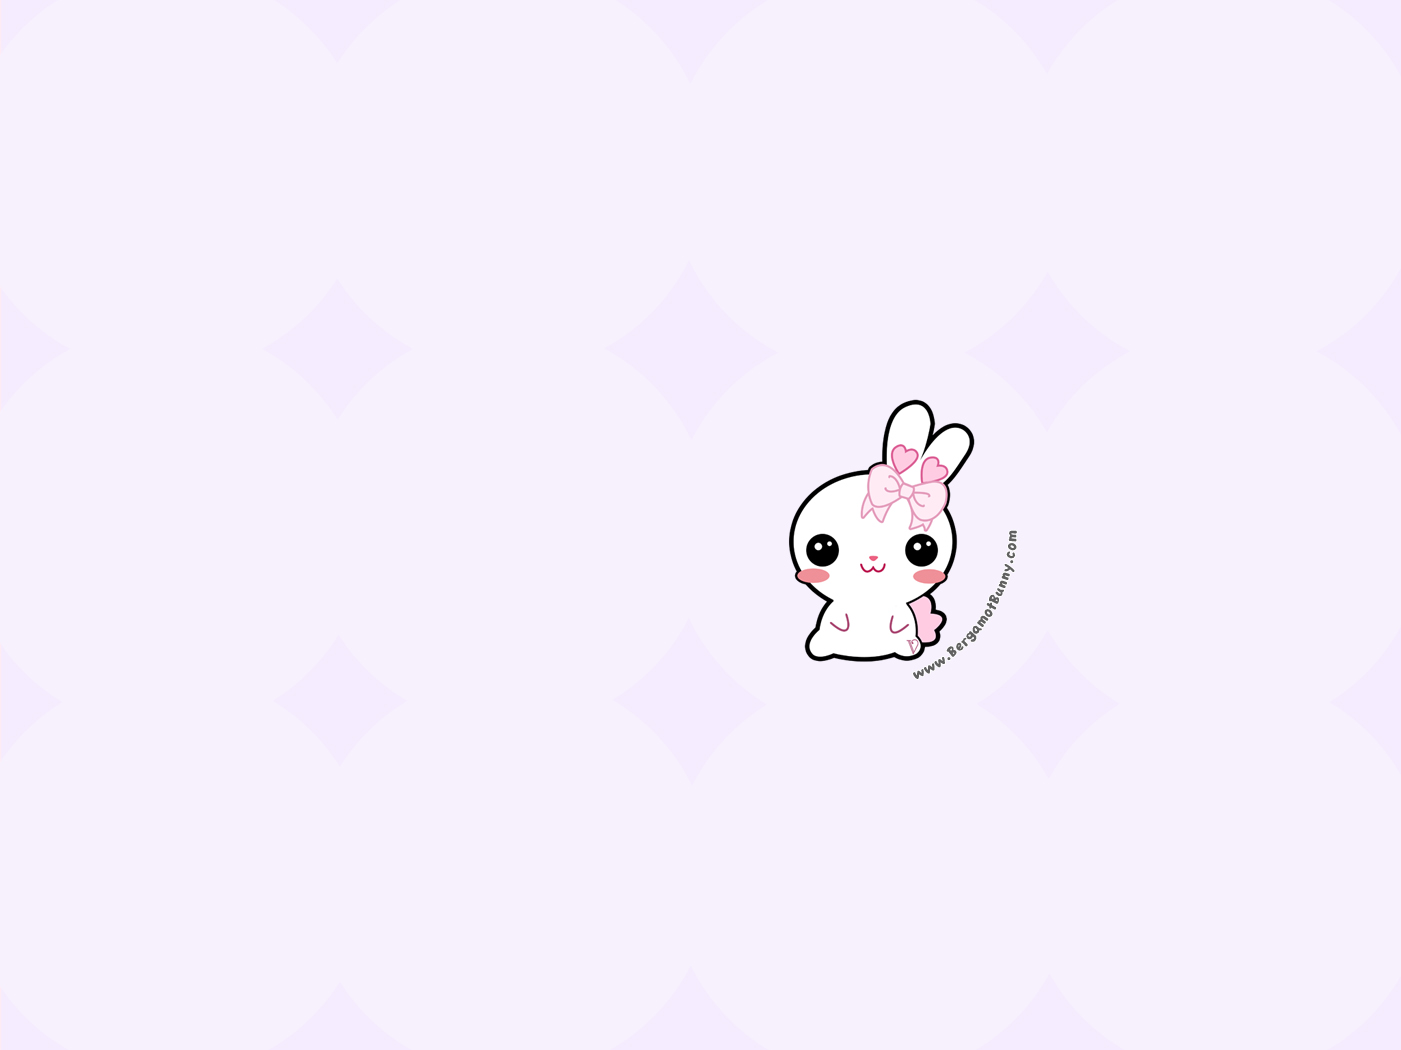 free bergamot bunny wallpapers to download violet